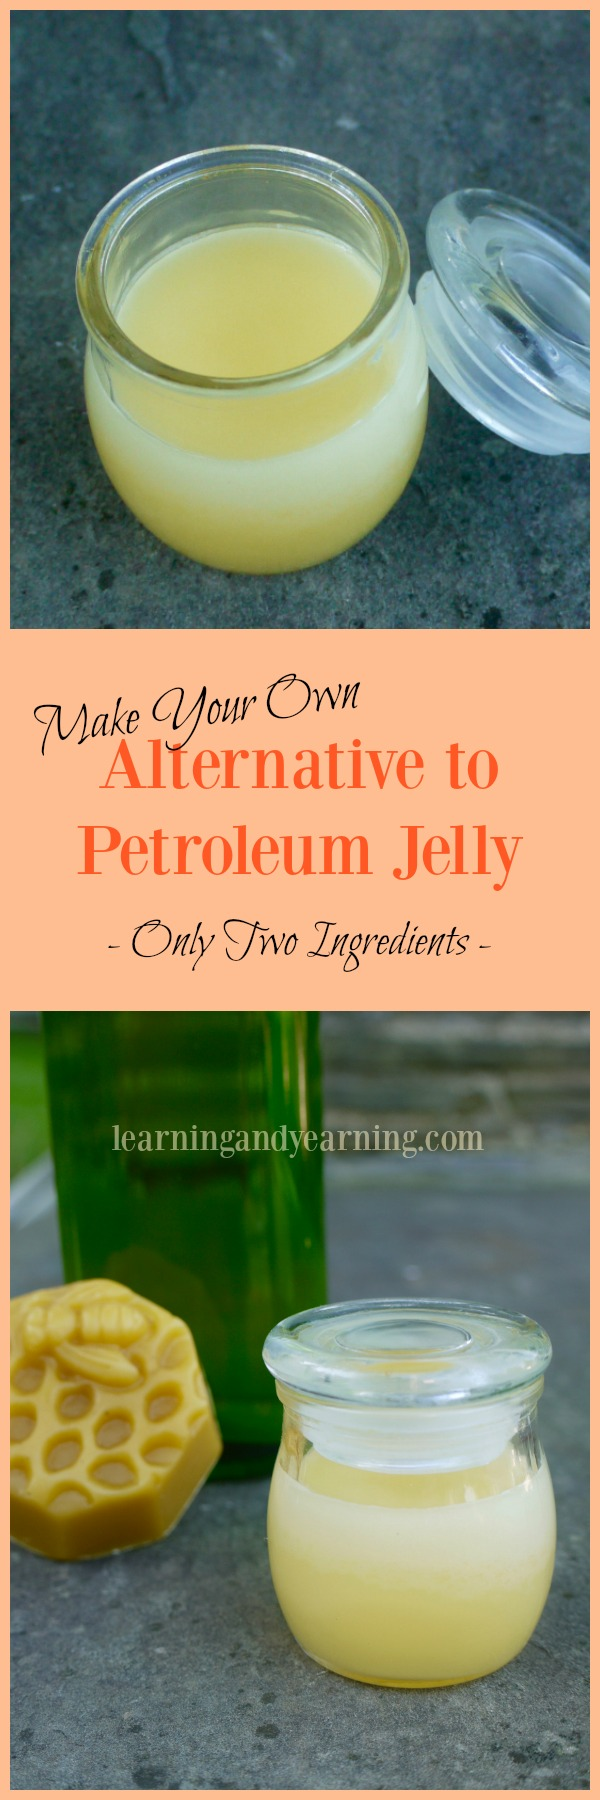 If you're looking for an alternative to petroleum jelly, it couldn't be easier to make your own. This simple recipe uses only two ingredients!